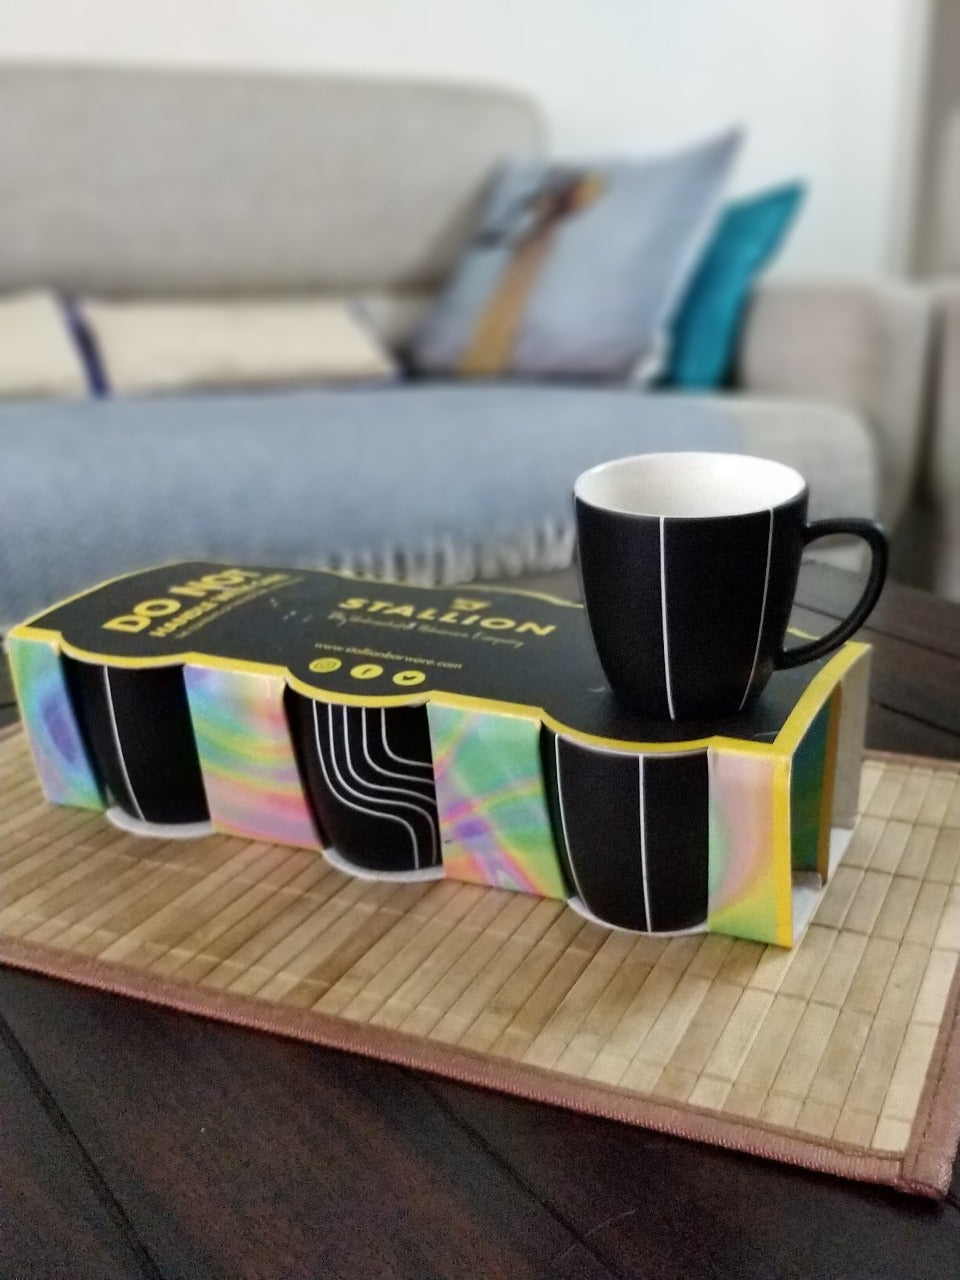 Unbreakable black and white designer tea cups (Set of 6) - The Black & White Collection